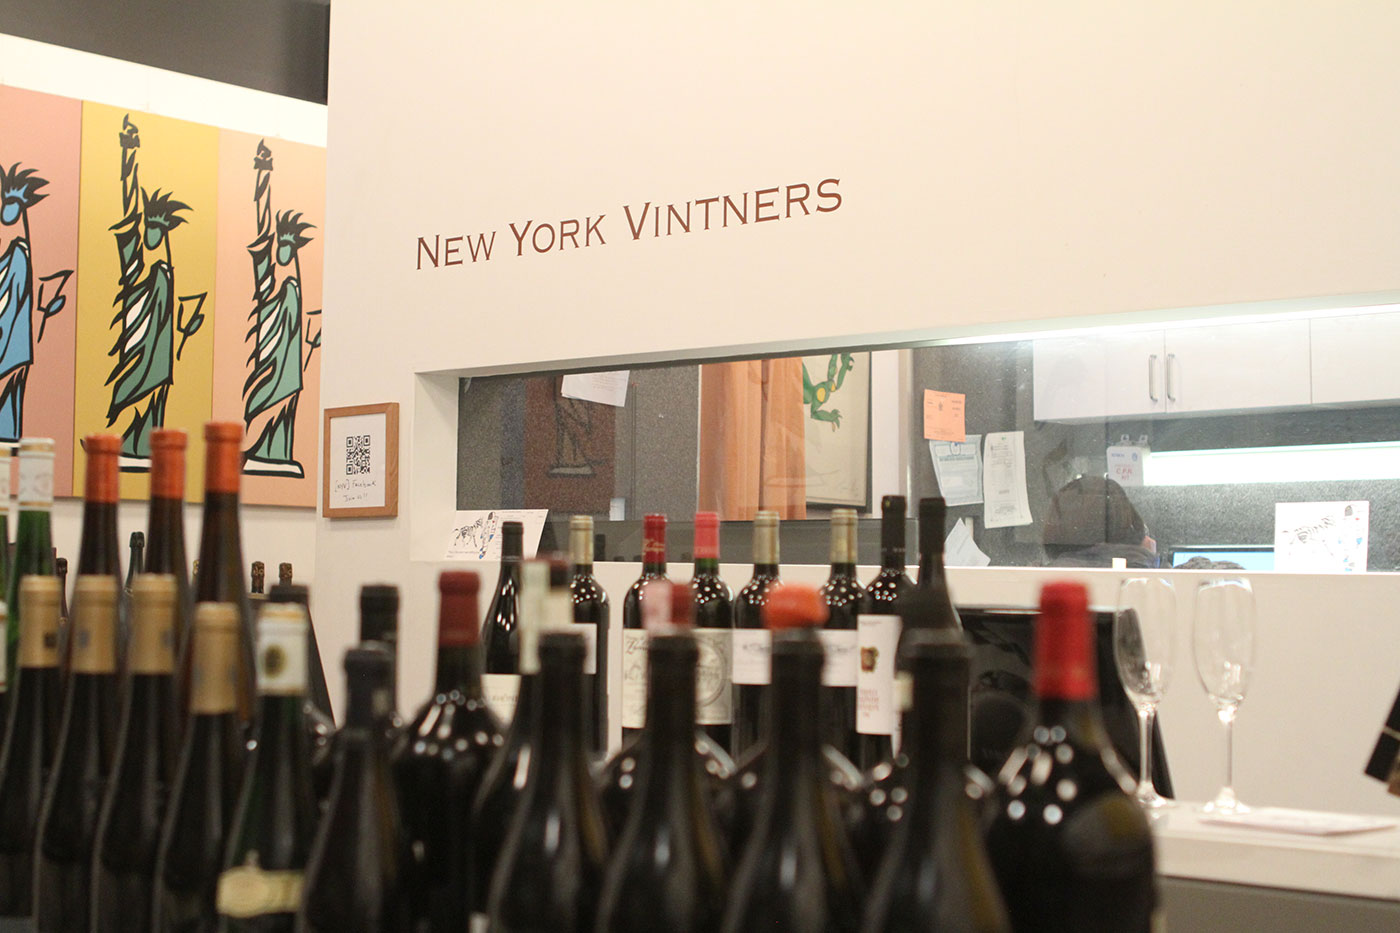 The warm & welcoming New York Vintners.